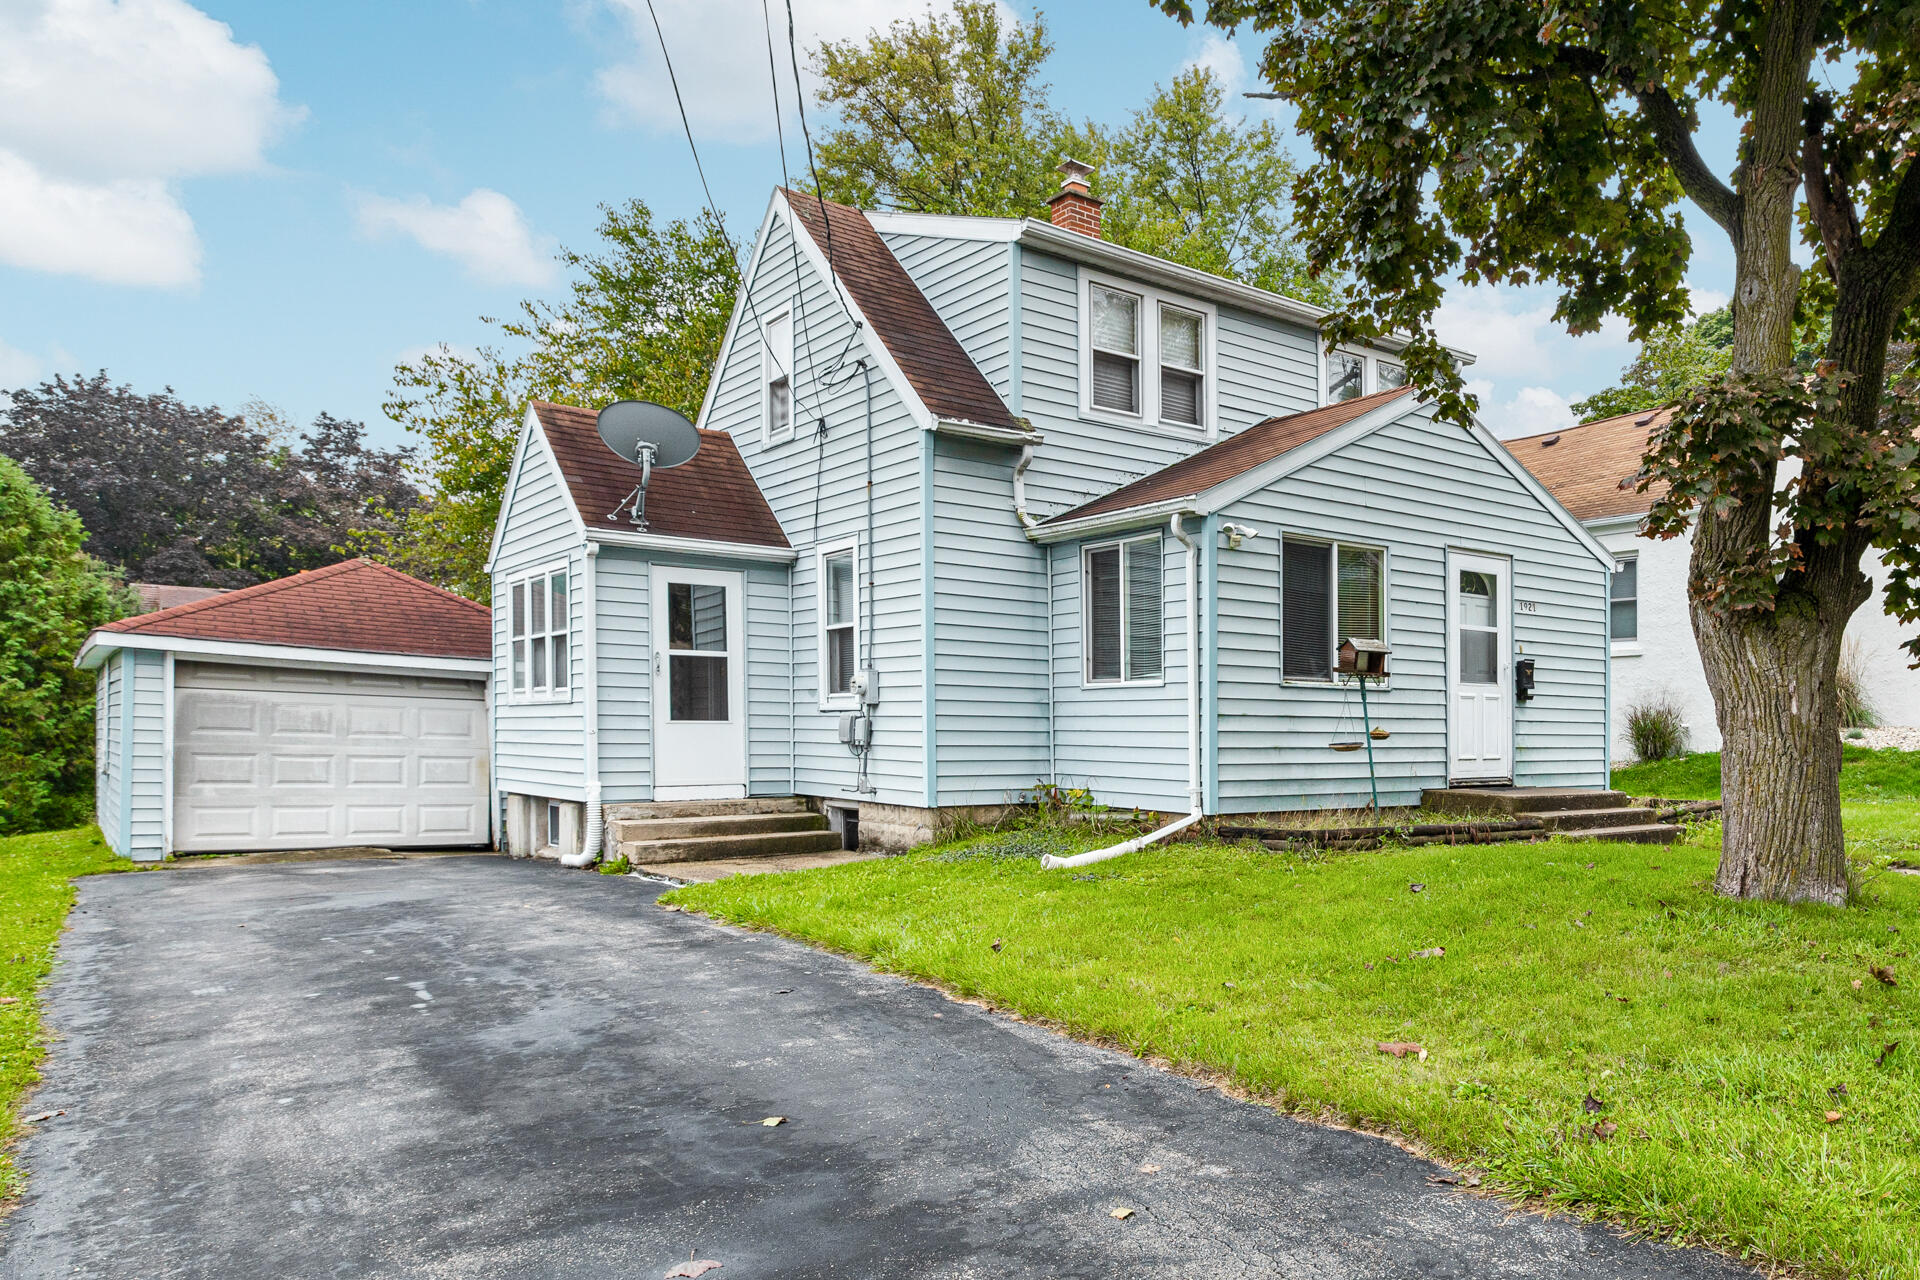 1921 Francis St, Waukesha, Wisconsin 53188, 2 Bedrooms Bedrooms, 6 Rooms Rooms,1 BathroomBathrooms,Single-Family,For Sale,Francis St,1767862